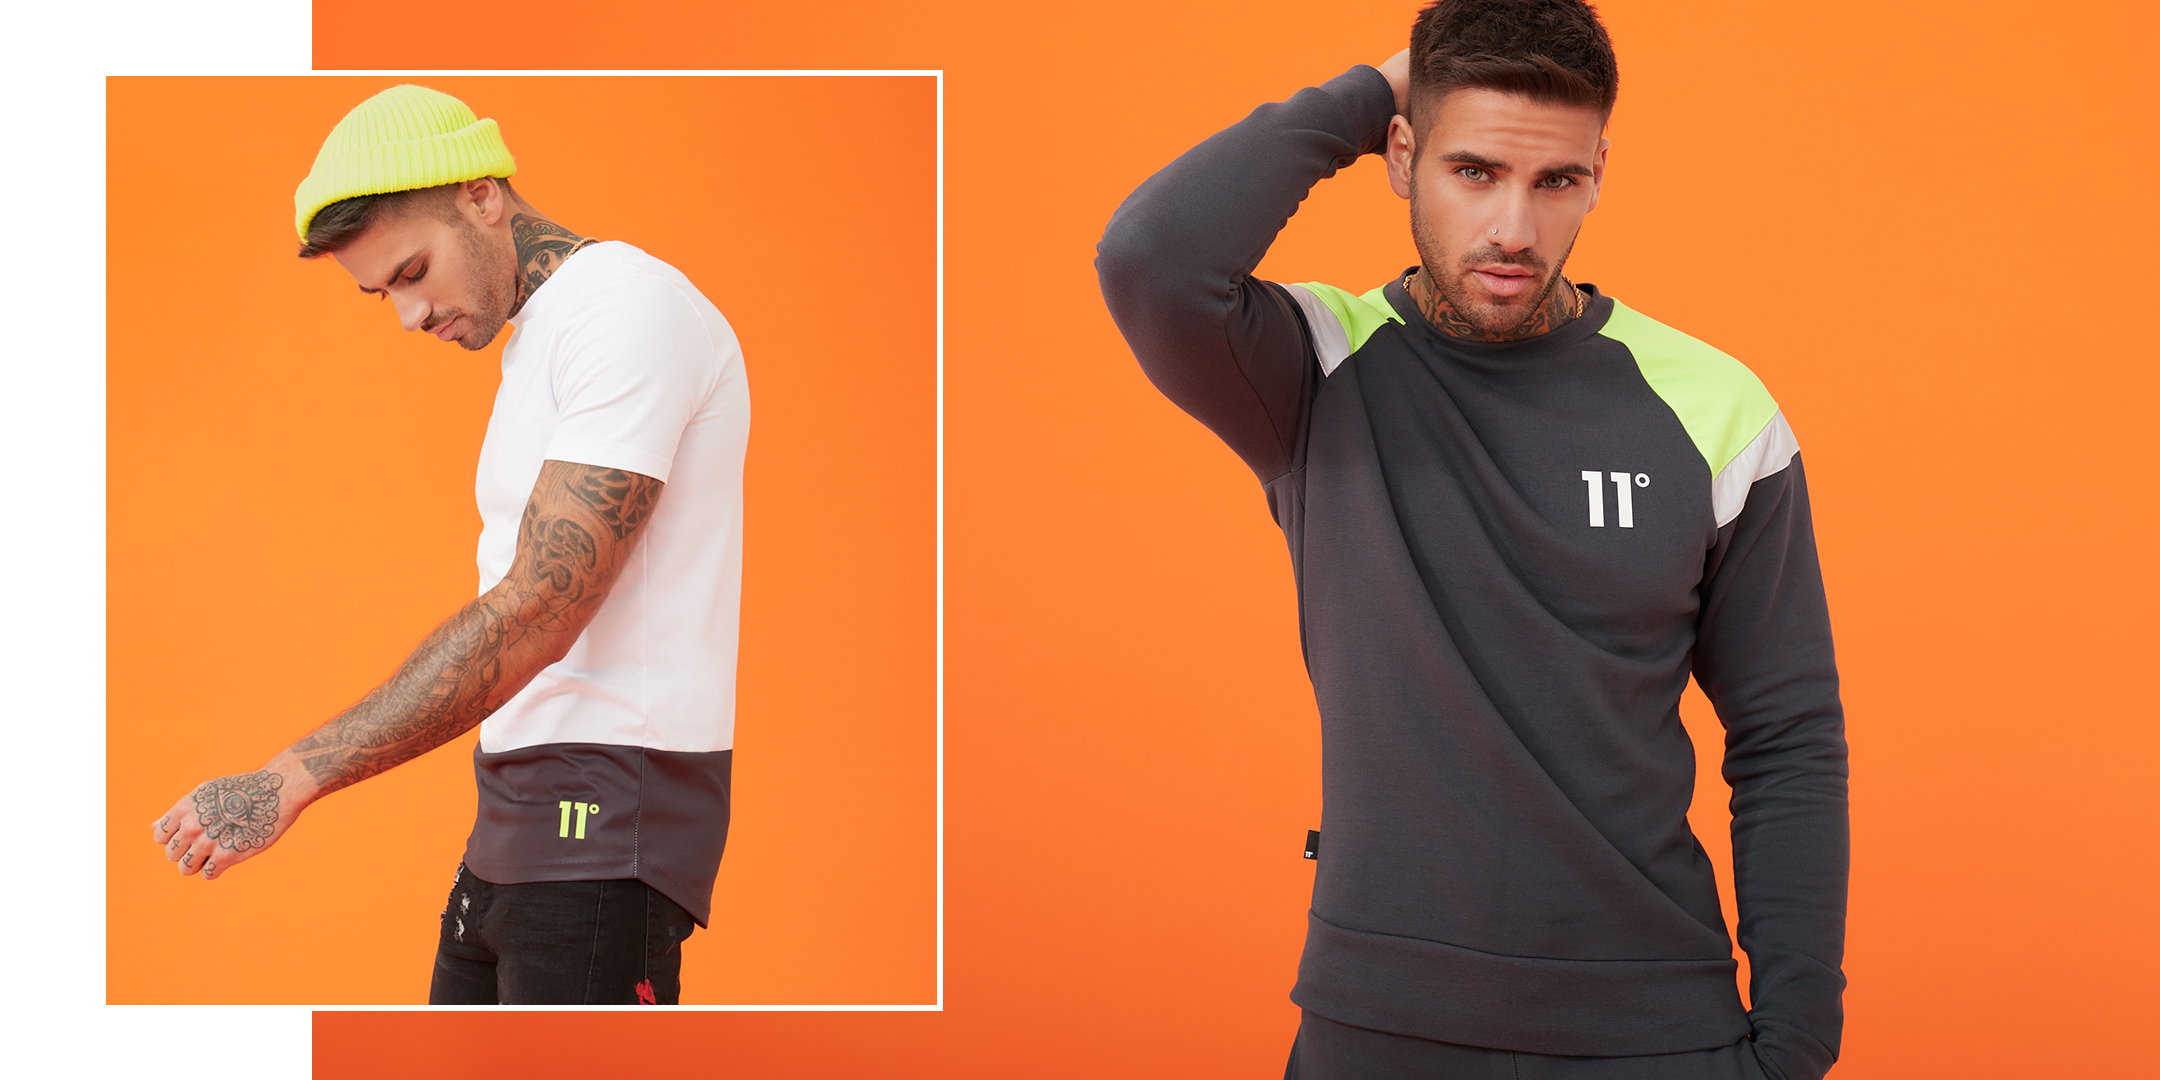 urban celebrity - Stand out from the crowd and save big on the latest streetwear styles from Urban Celebrity with the latest discount codes and deals from The Online Shopping Expert.